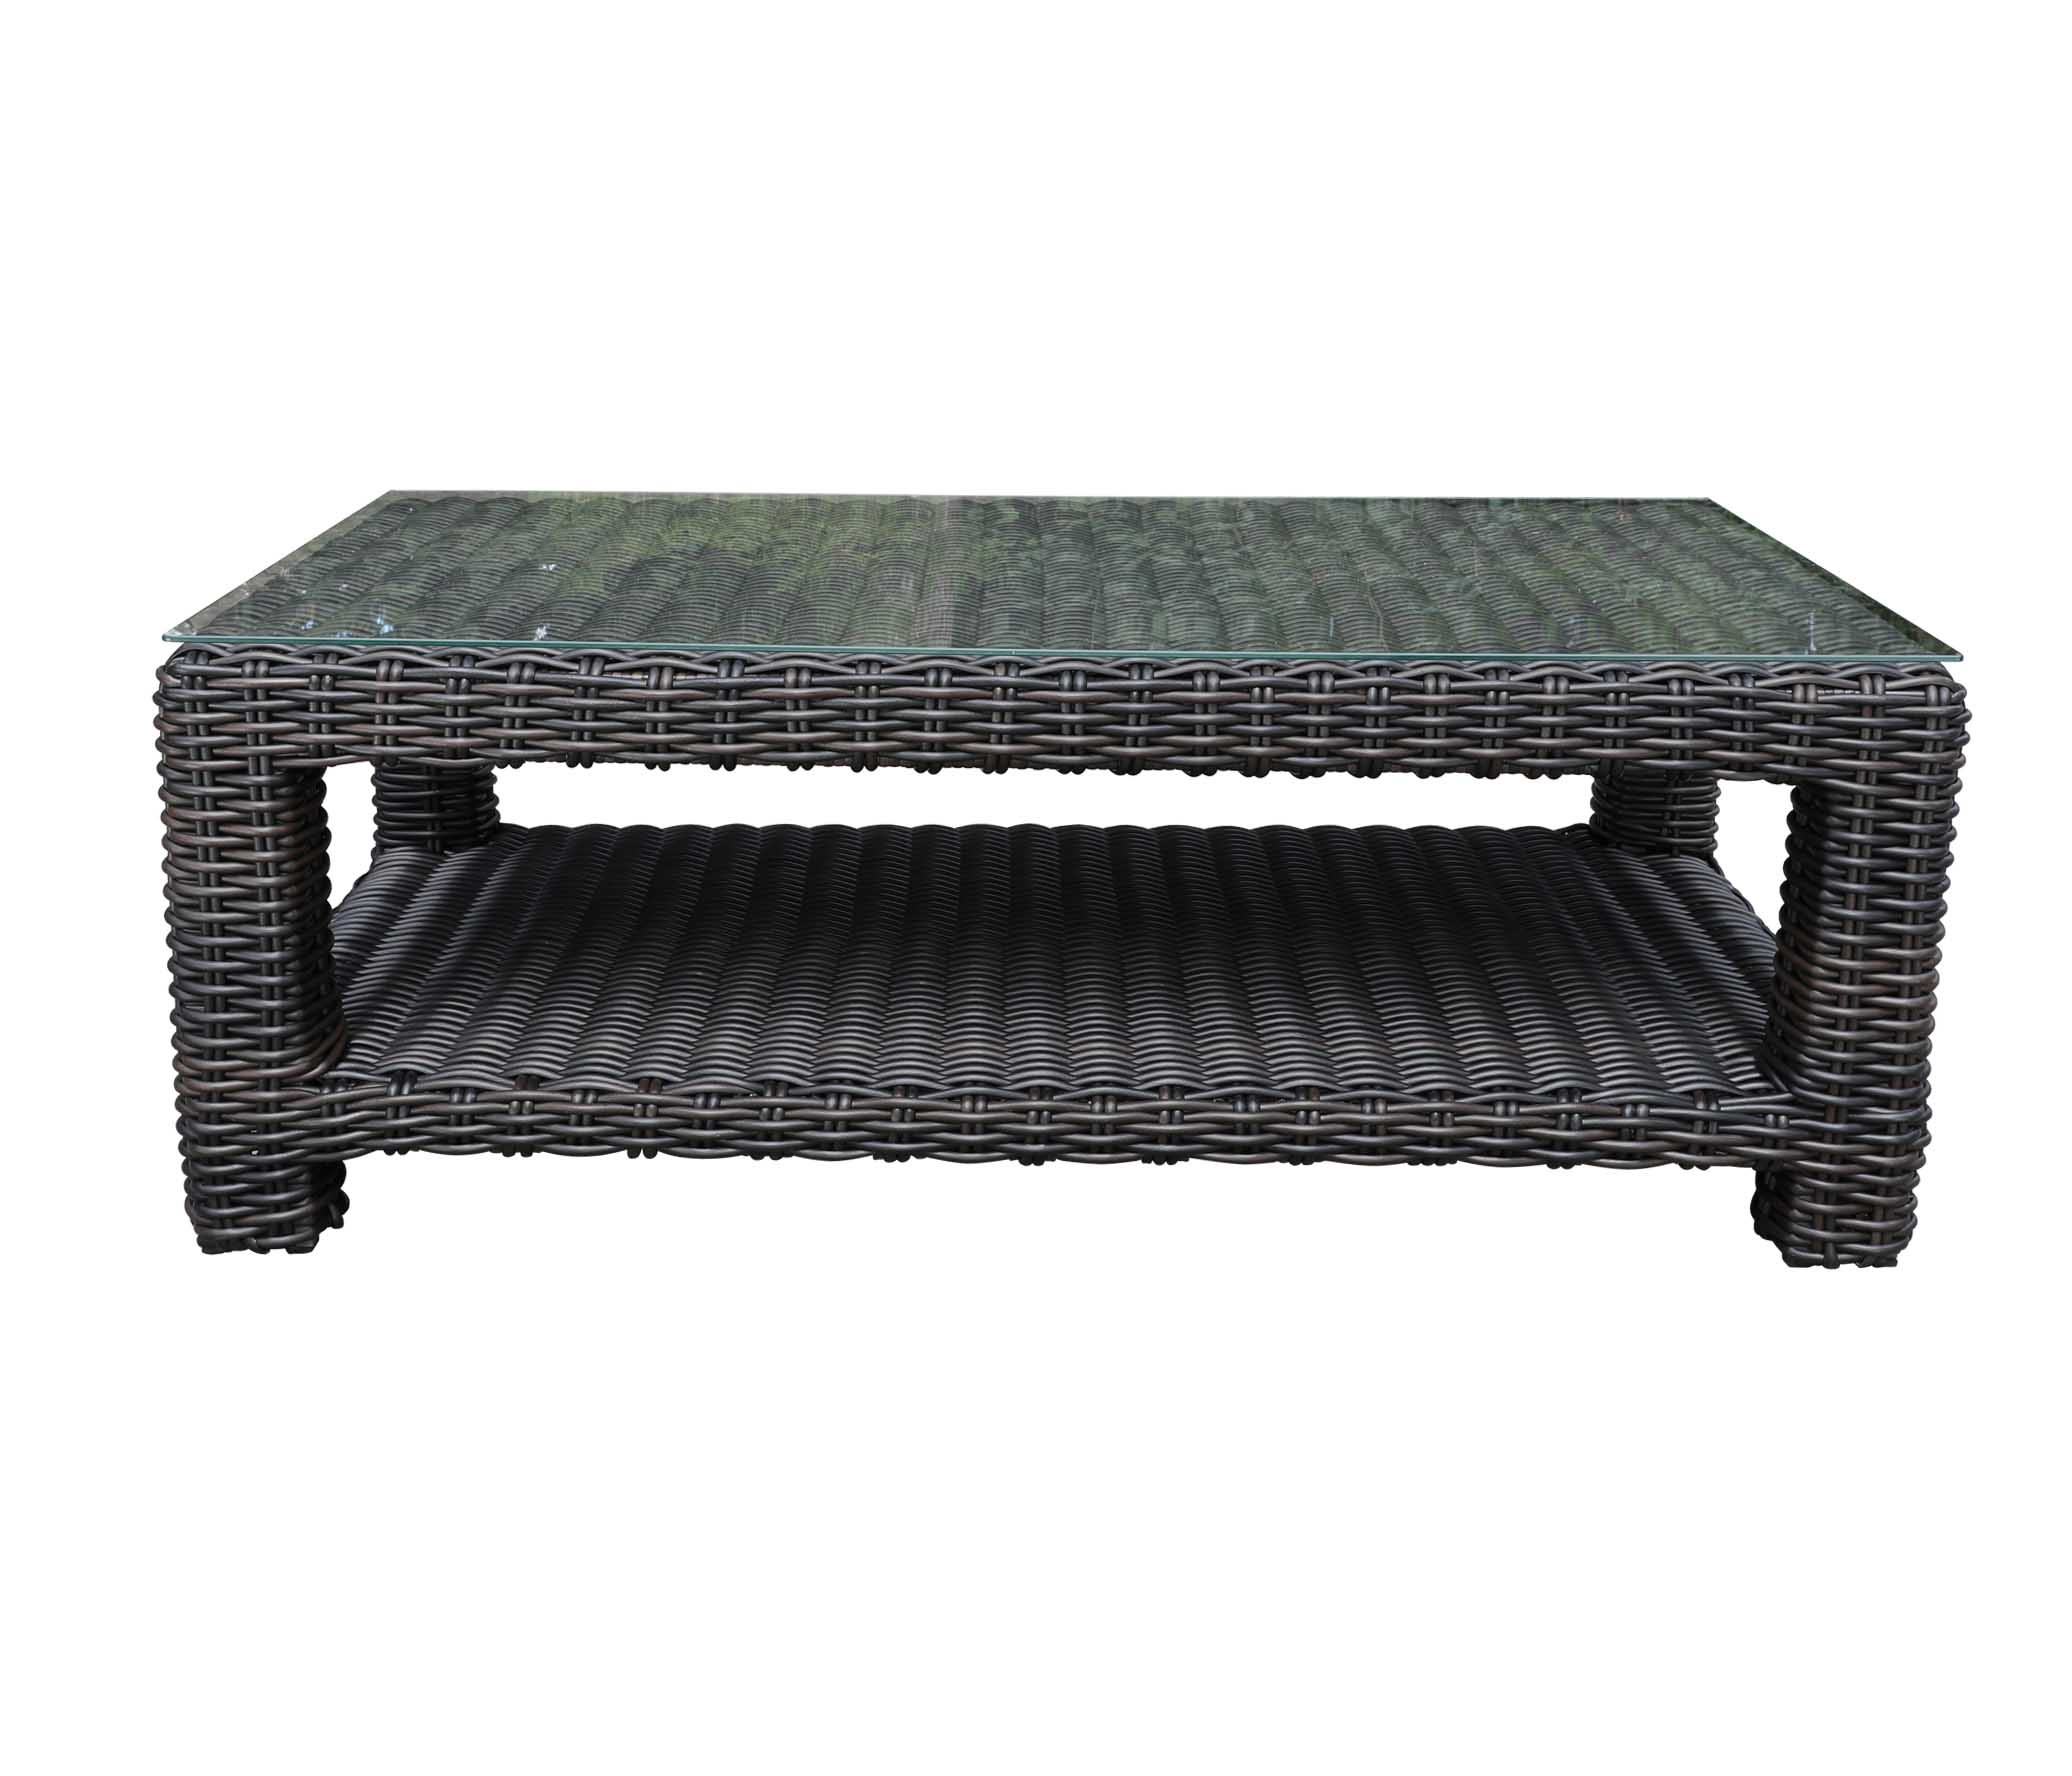 Oakville Outdoor Furniture Aubrey Coffee Table 9450 Patio Furniture Wicker